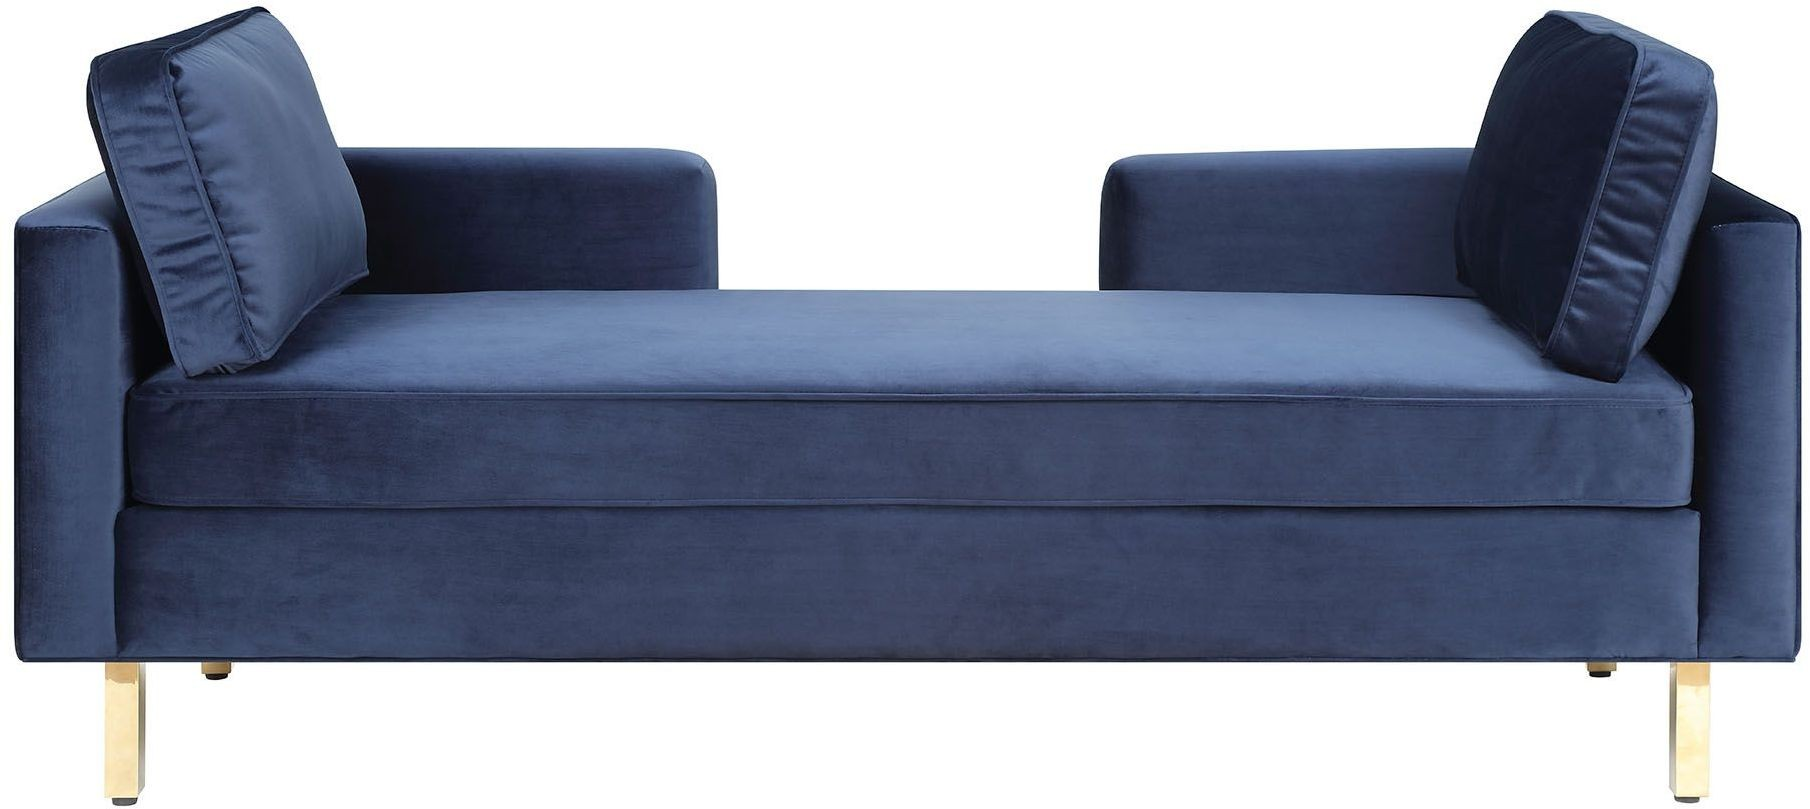 Chaise Navy Navy Double Chaise 550356 Coaster Furniture